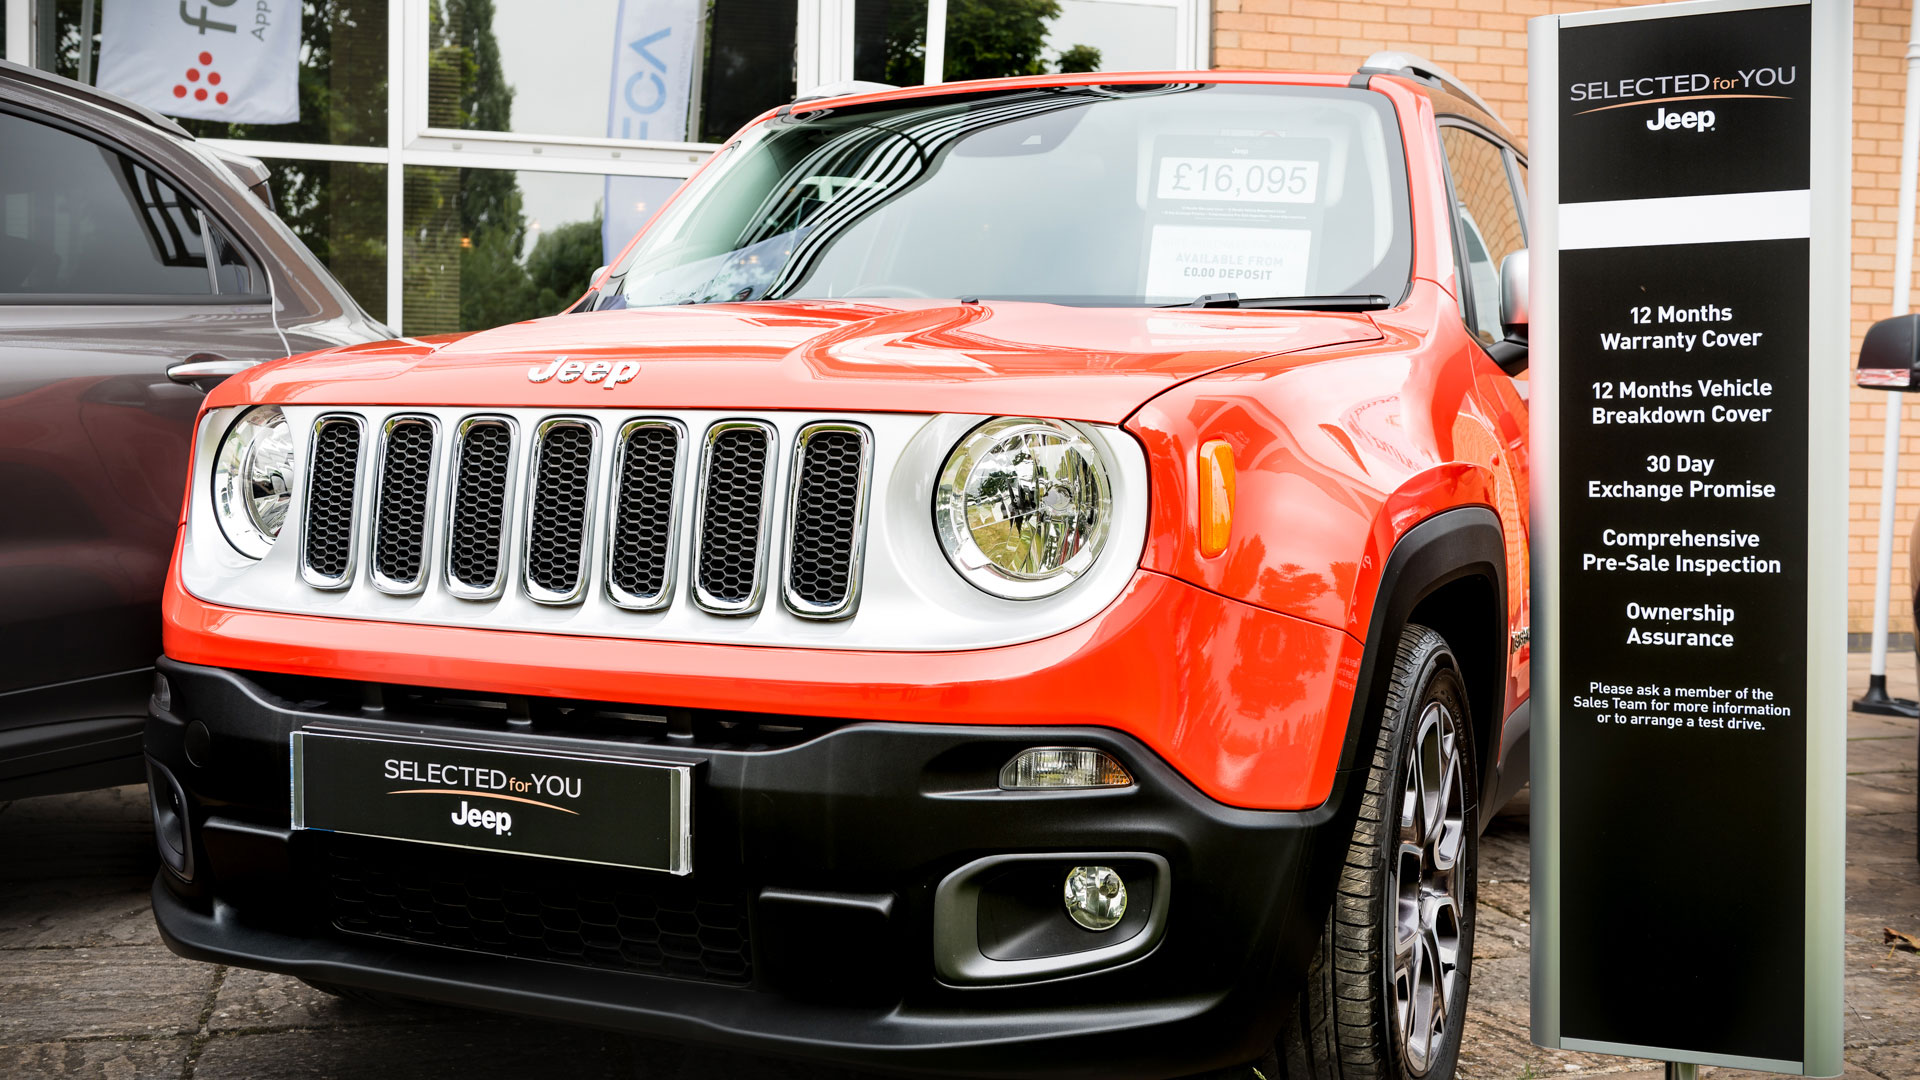 Selected for You Jeep